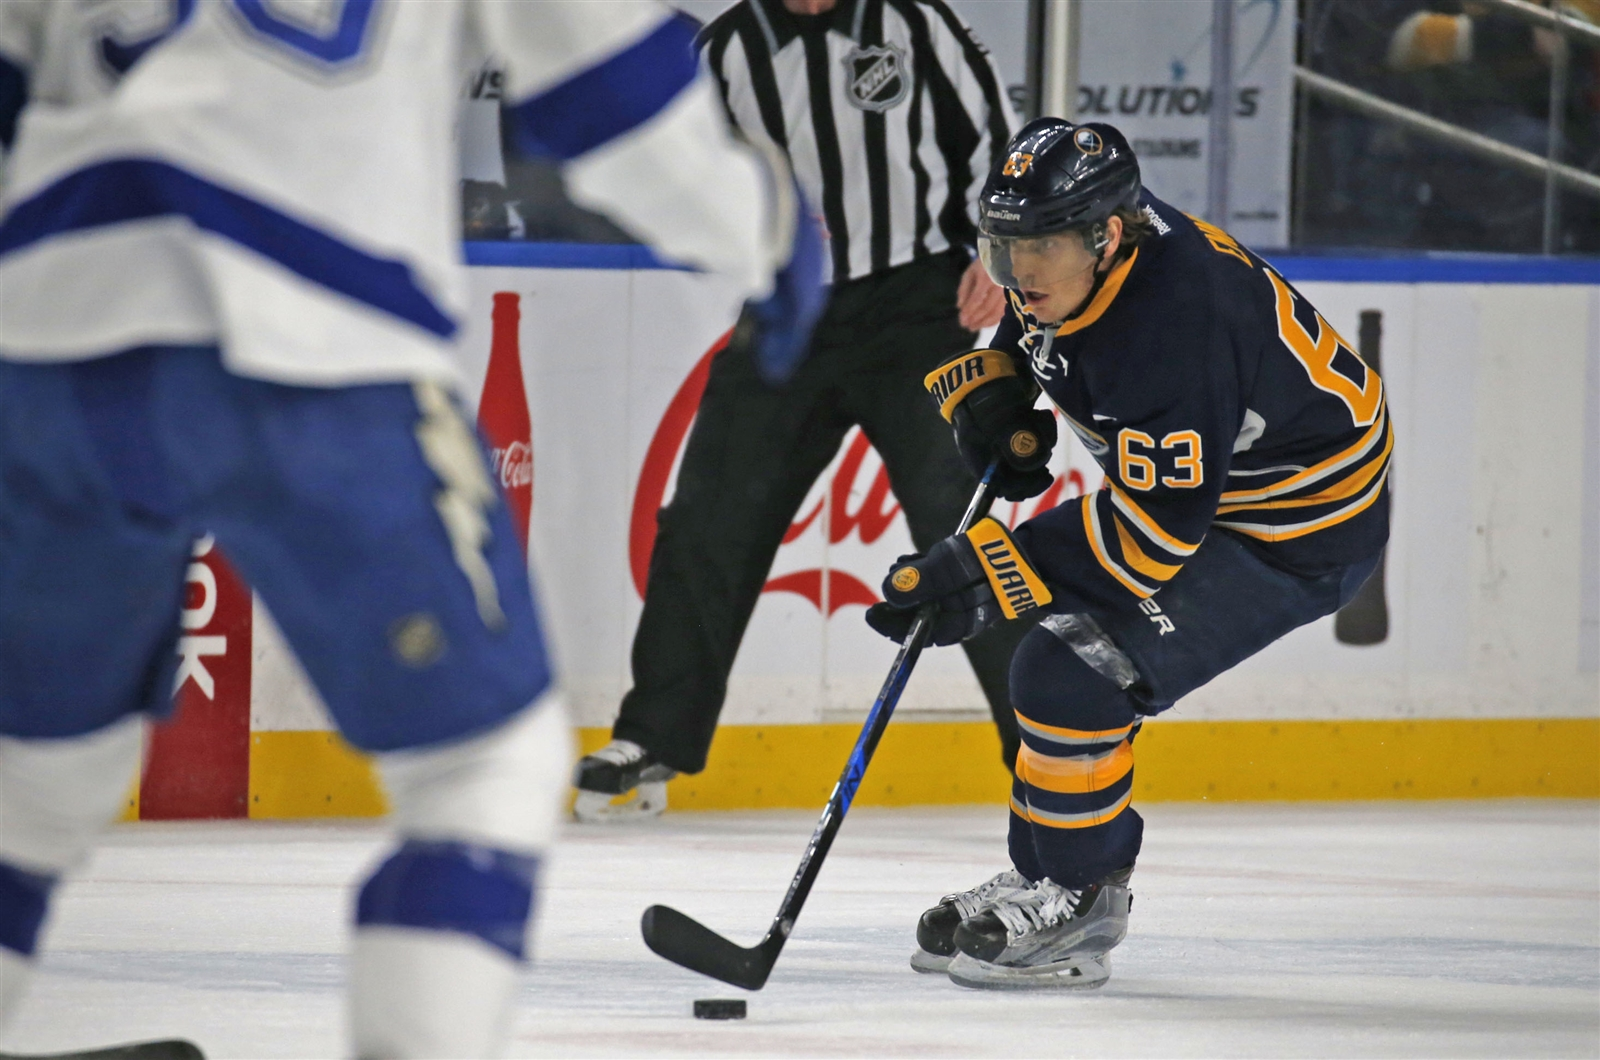 Alongside Jack Eichel and Ryan O'Reilly, Tyler Ennis has a chance to end his slumps. (Robert Kirkham/Buffalo News)